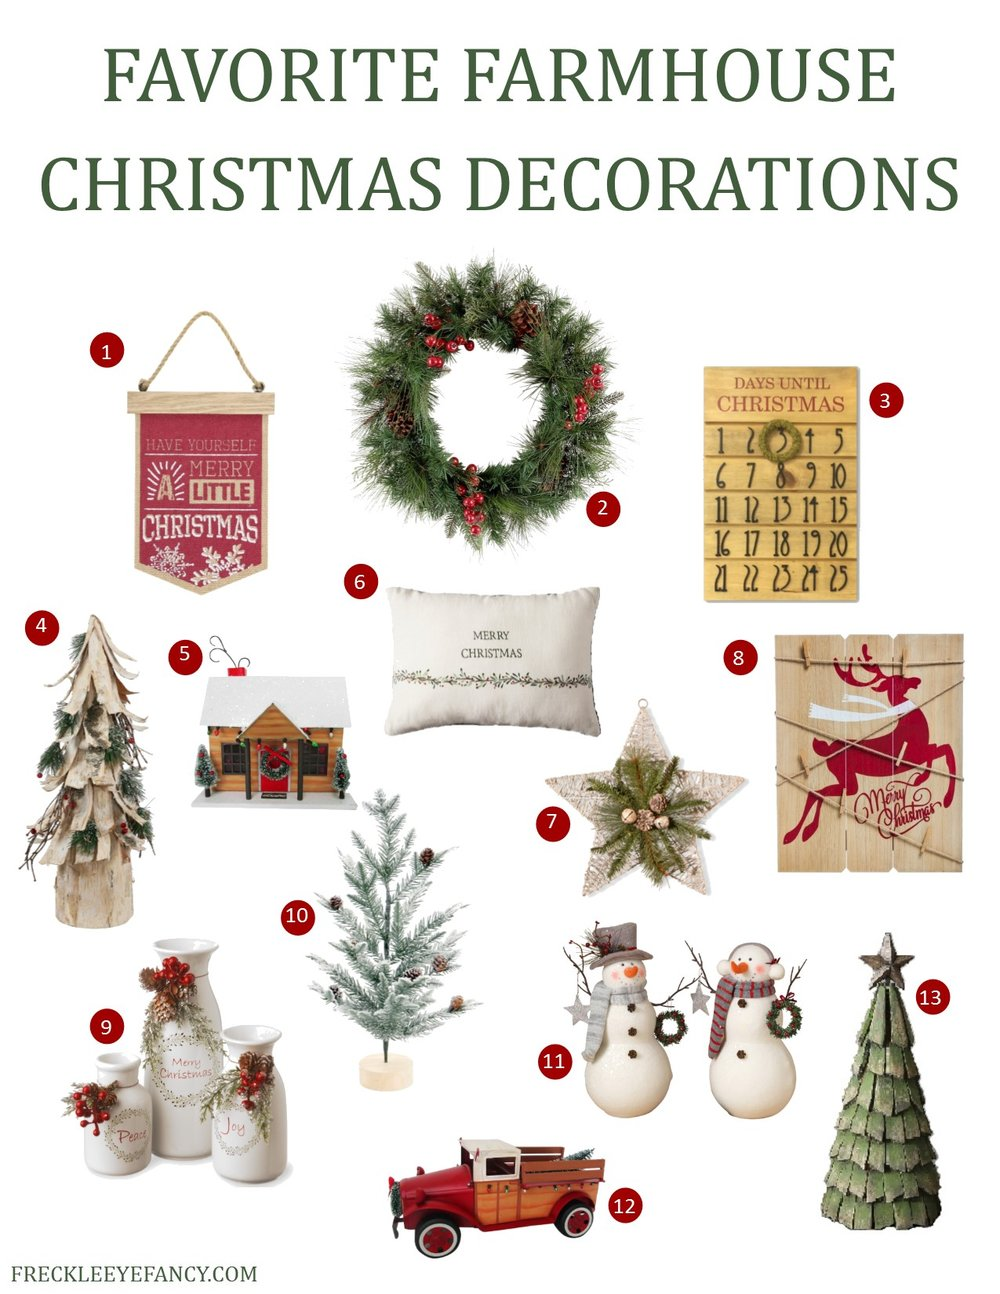 Christmas Decor WITH SITE.jpg